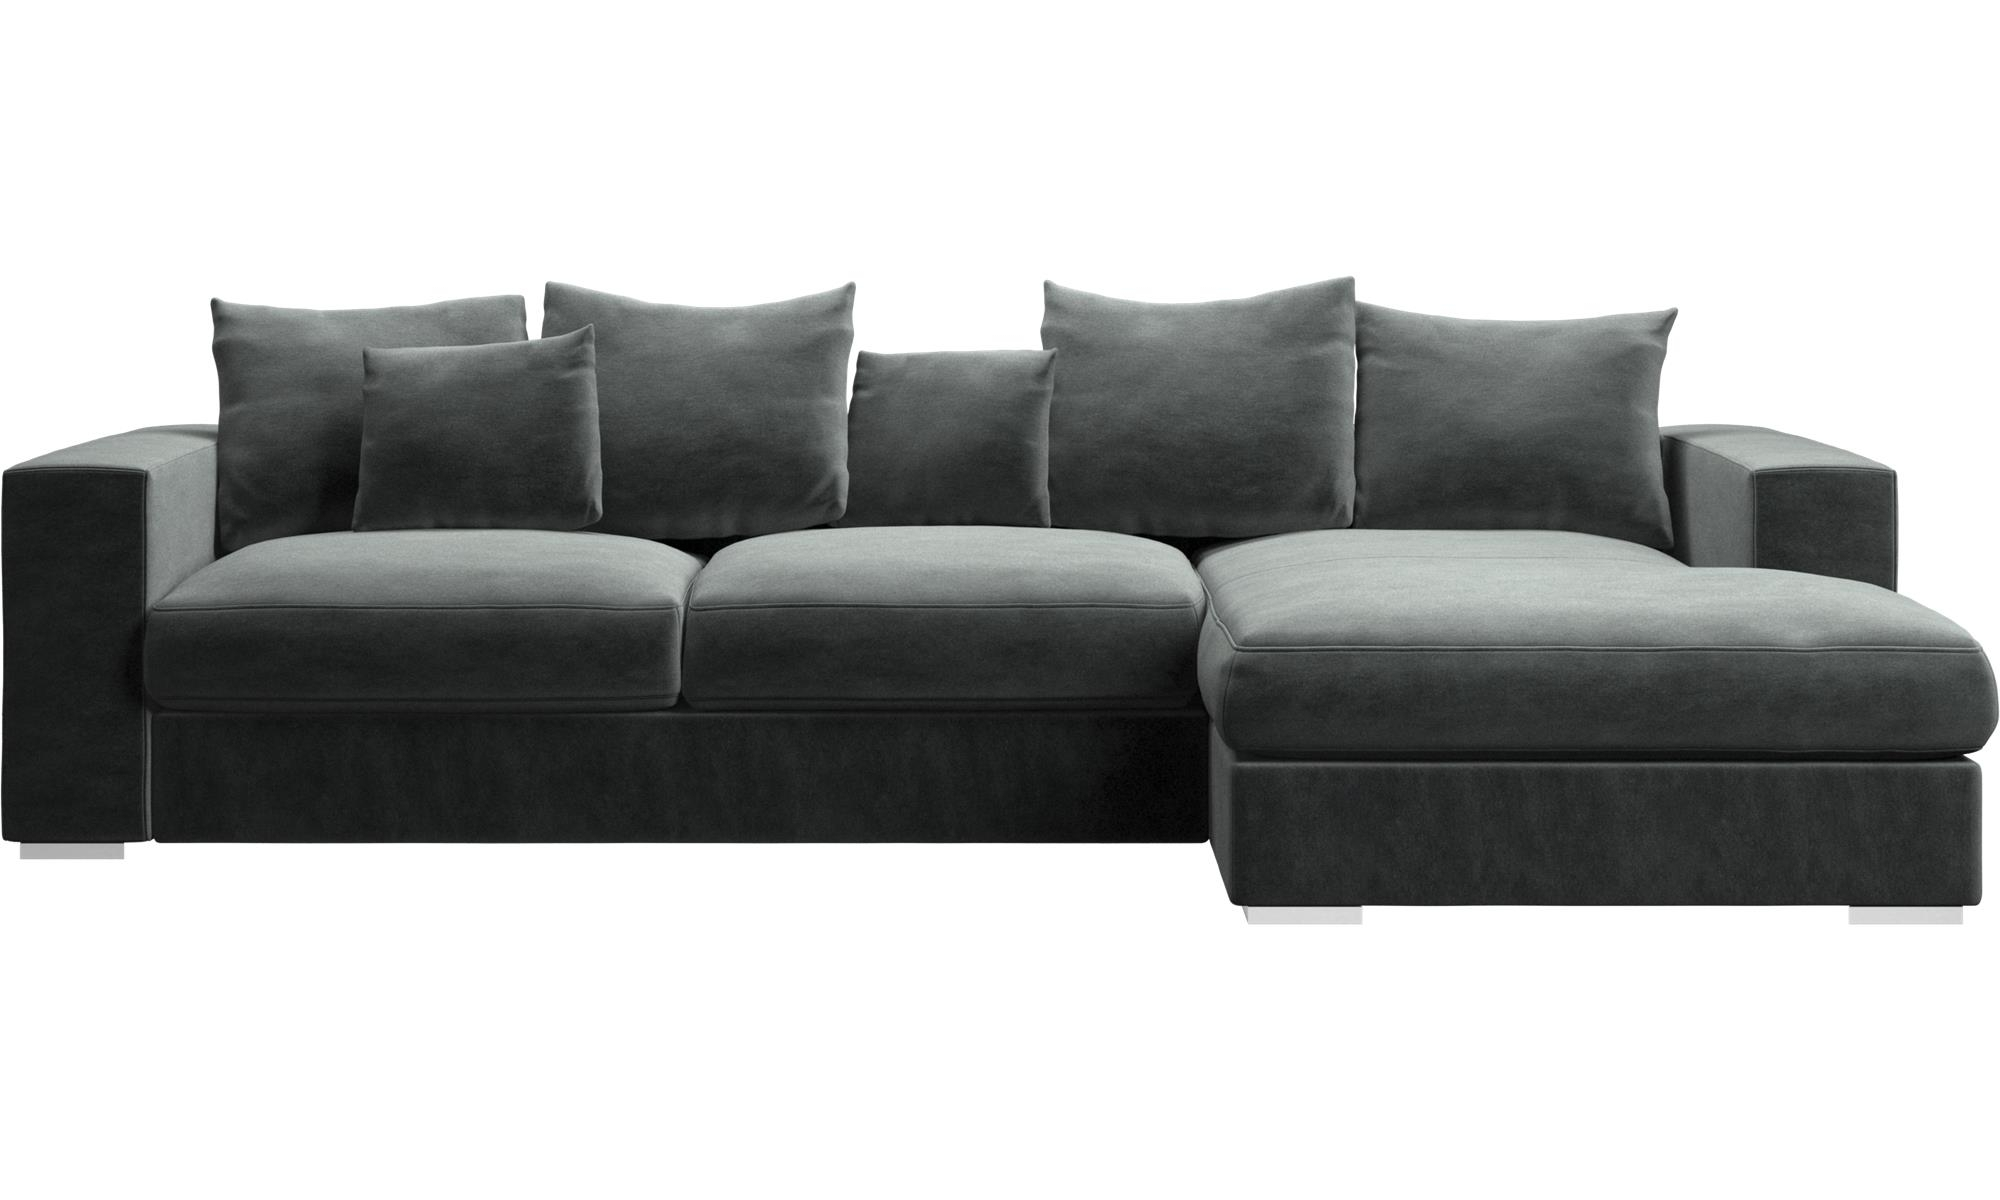 Most Recent Chaise Lounge Sofas – Cenova Sofa With Resting Unit – Boconcept With Sofas With Chaise Lounge (View 4 of 15)